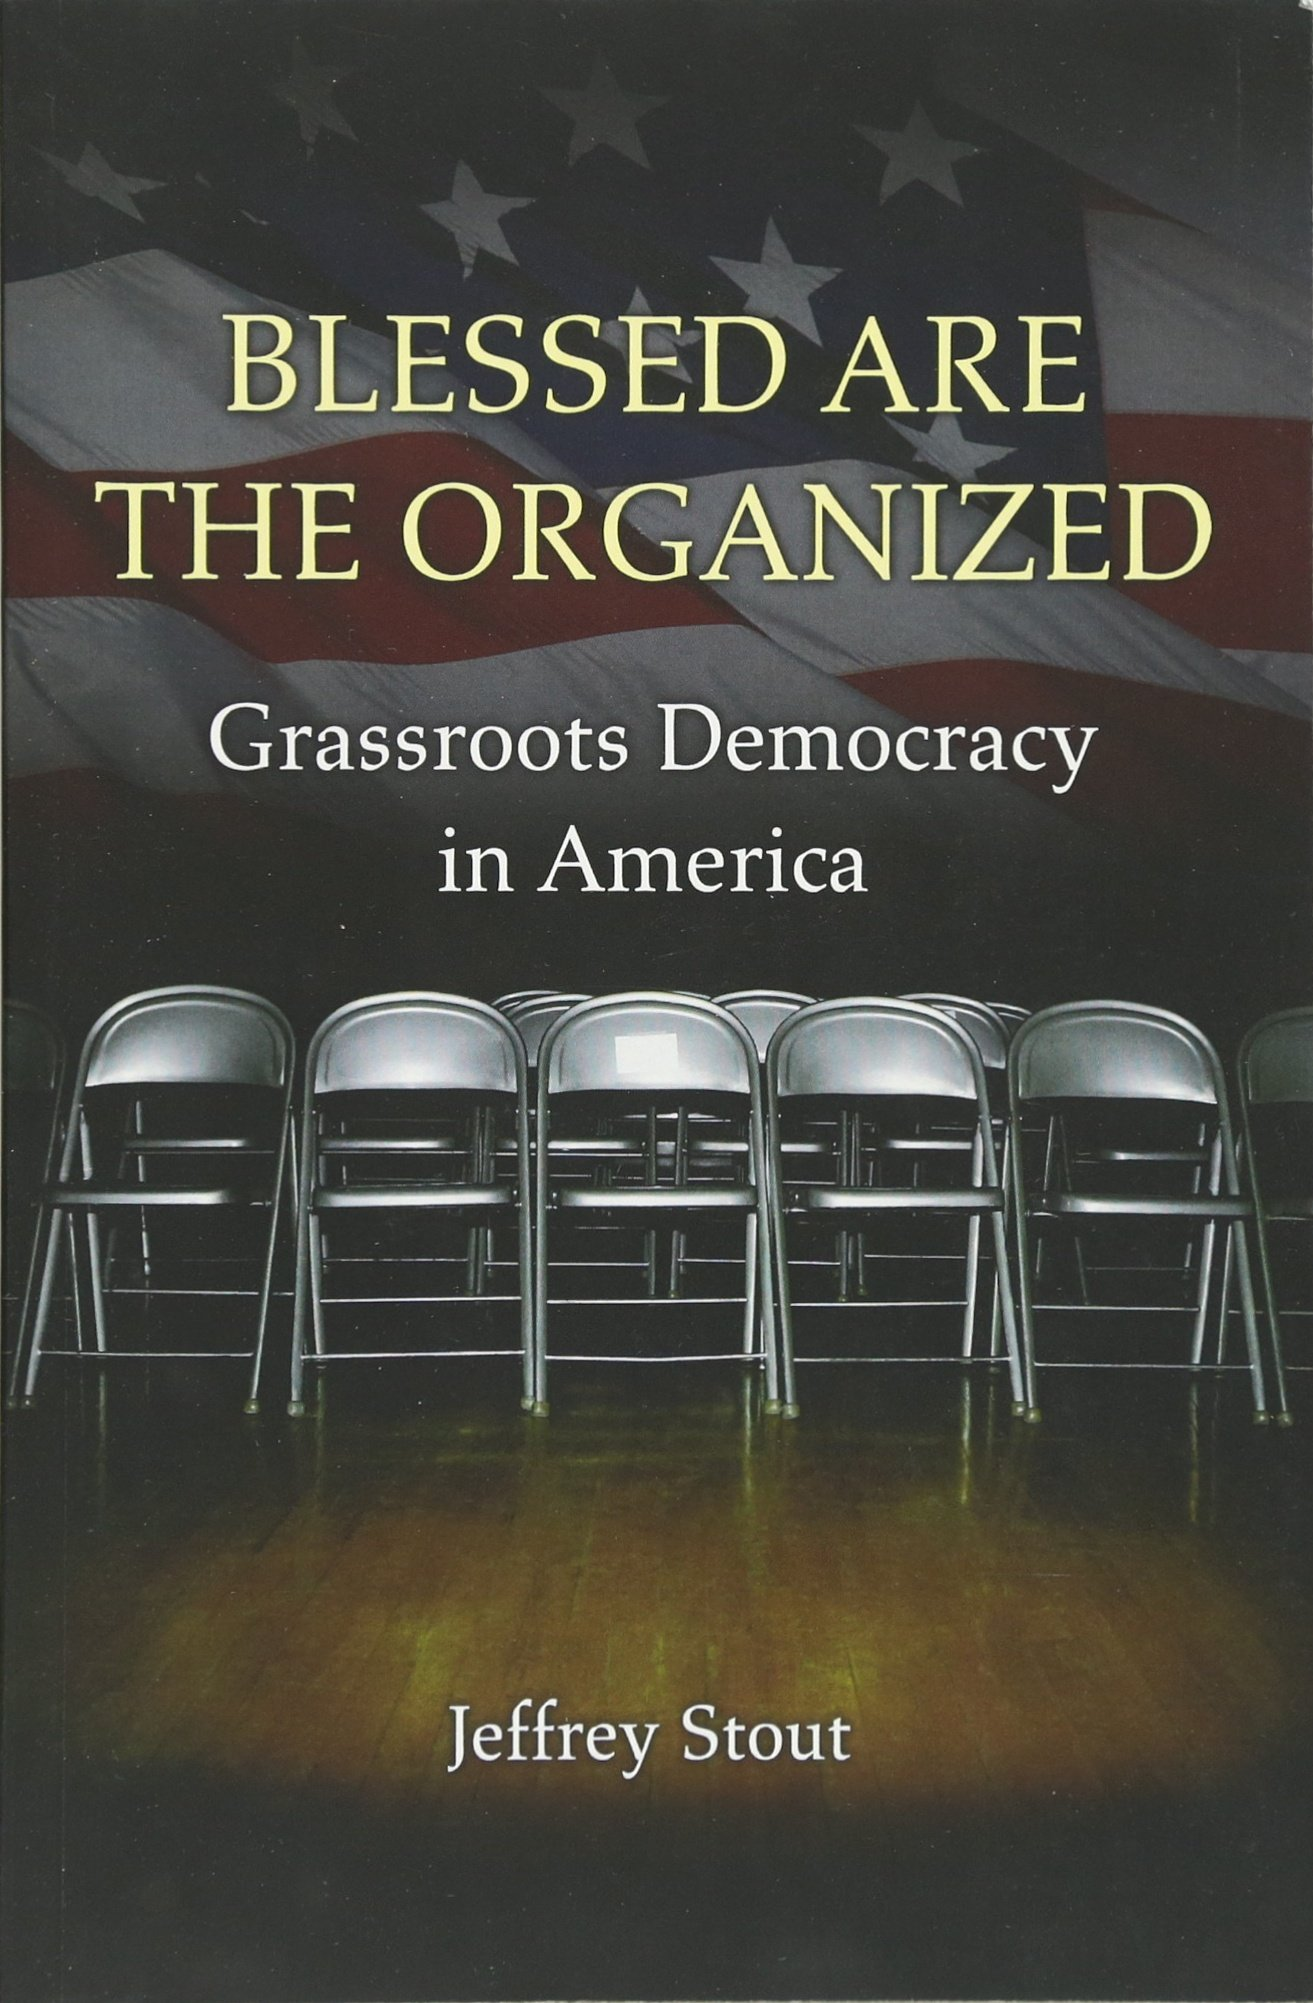 Blessed Are The Organized: Grassroots Democracy In America: Jeffrey Stout:  9780691156651: Amazon.com: Books